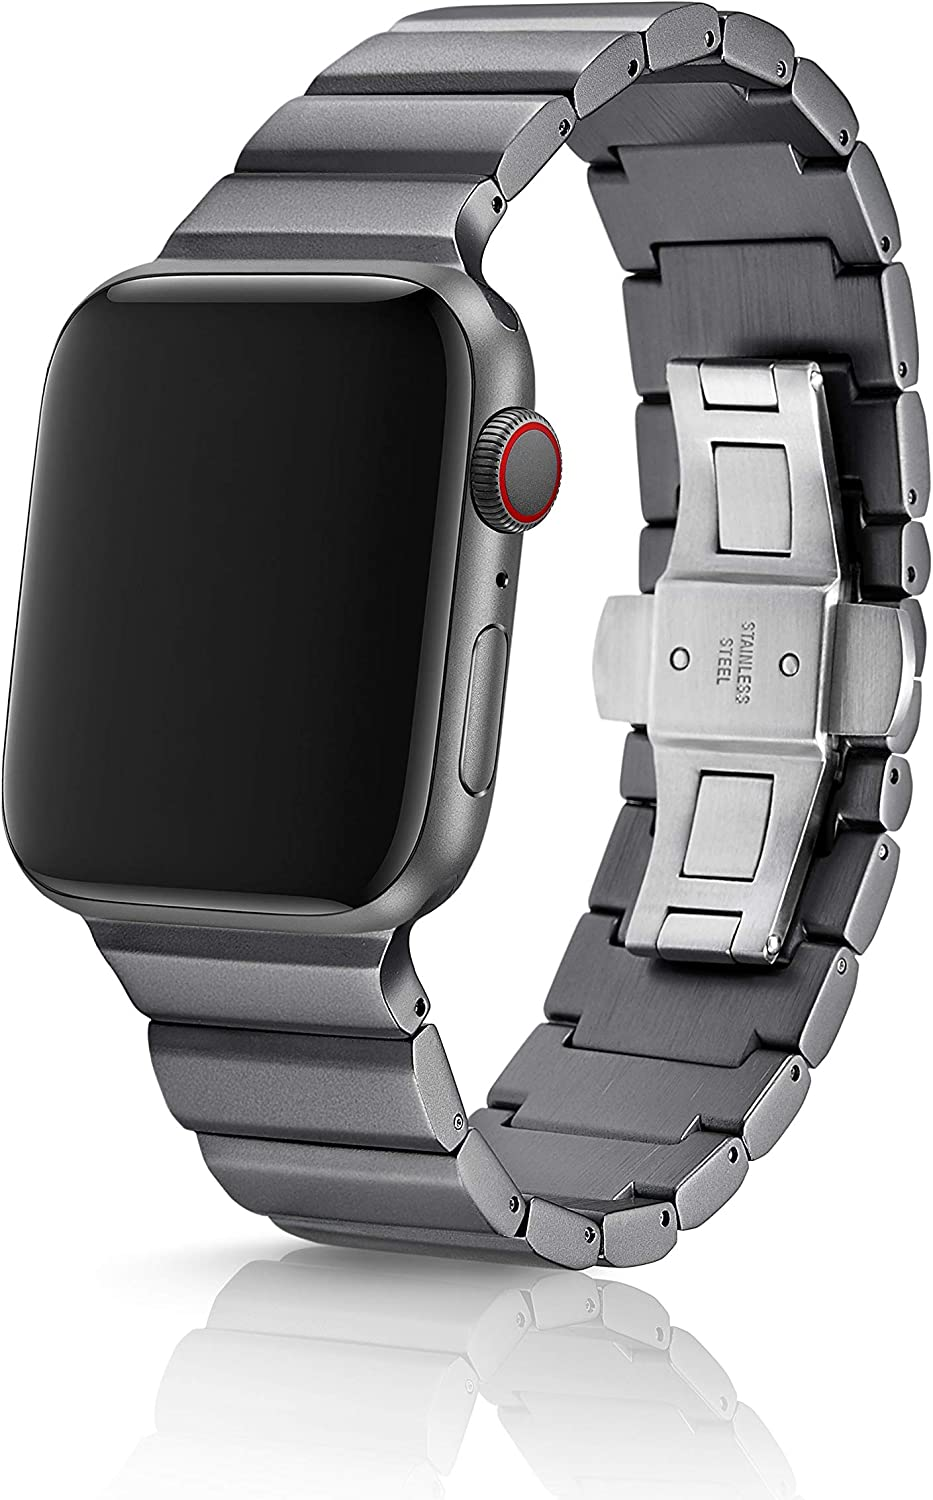 42/44mm JUUK Ligero Cosmic Grey LT Premium watch band made for the Apple Watch, using aircraft grade, hard anodized 6000 series aluminum with a solid stainless steel butterfly deployant buckle (matte) 71qyZLN0u5L